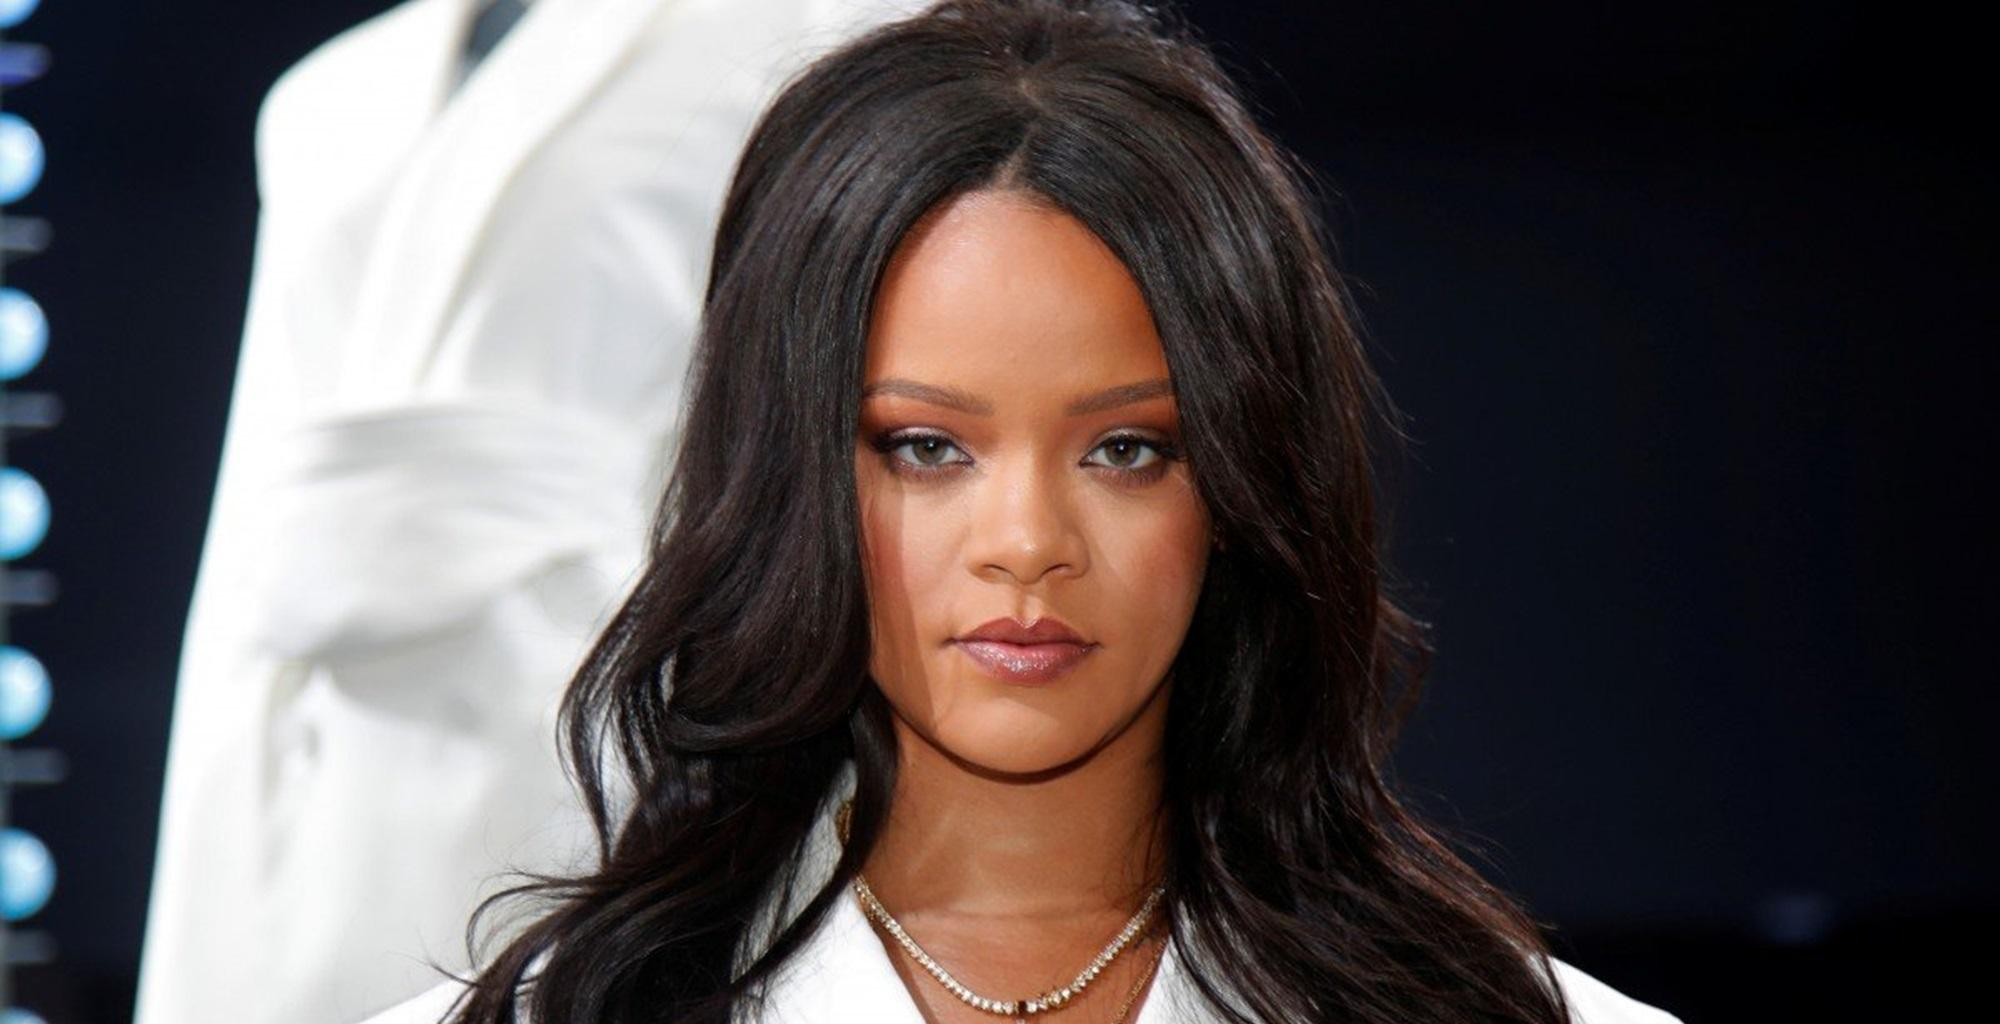 Rihanna Wears Almost Nothing In New Photo To Promote Her Latest Project